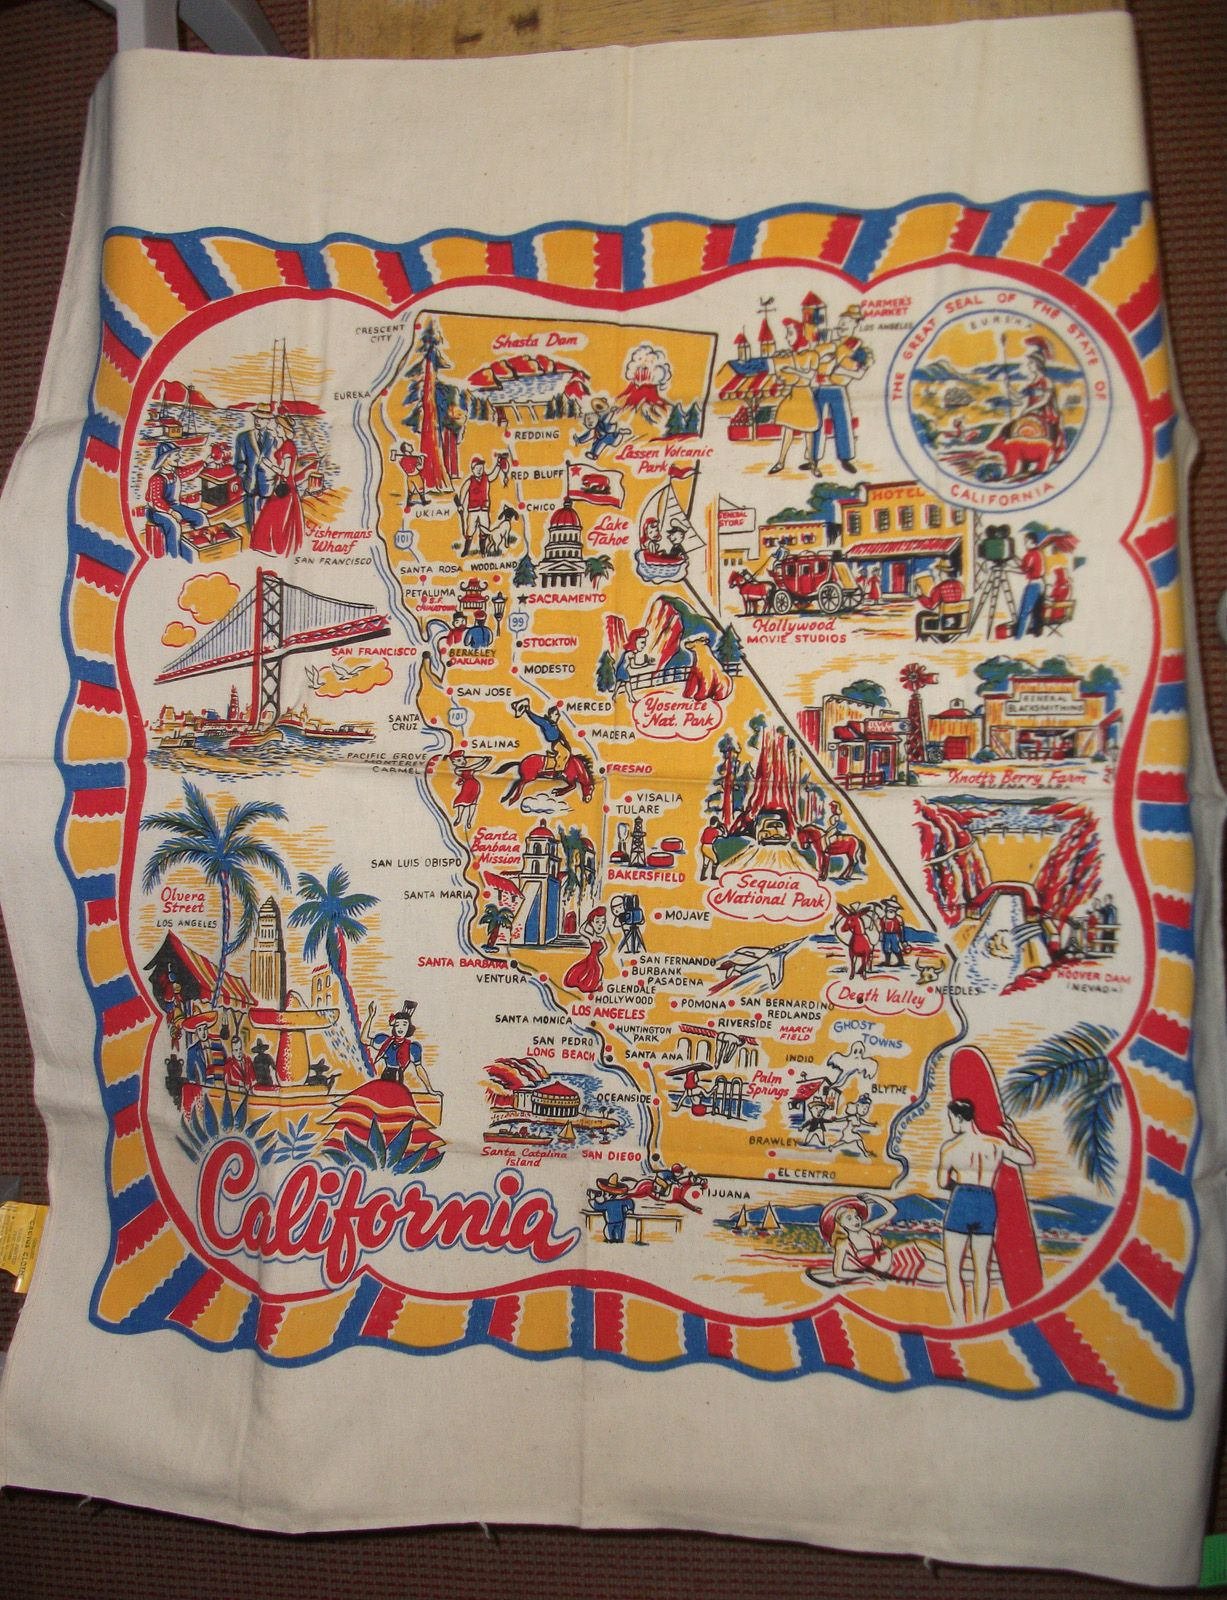 Souvenir tablecloth from California, Cactus Cloth - never used, original tag intact. SOLD!